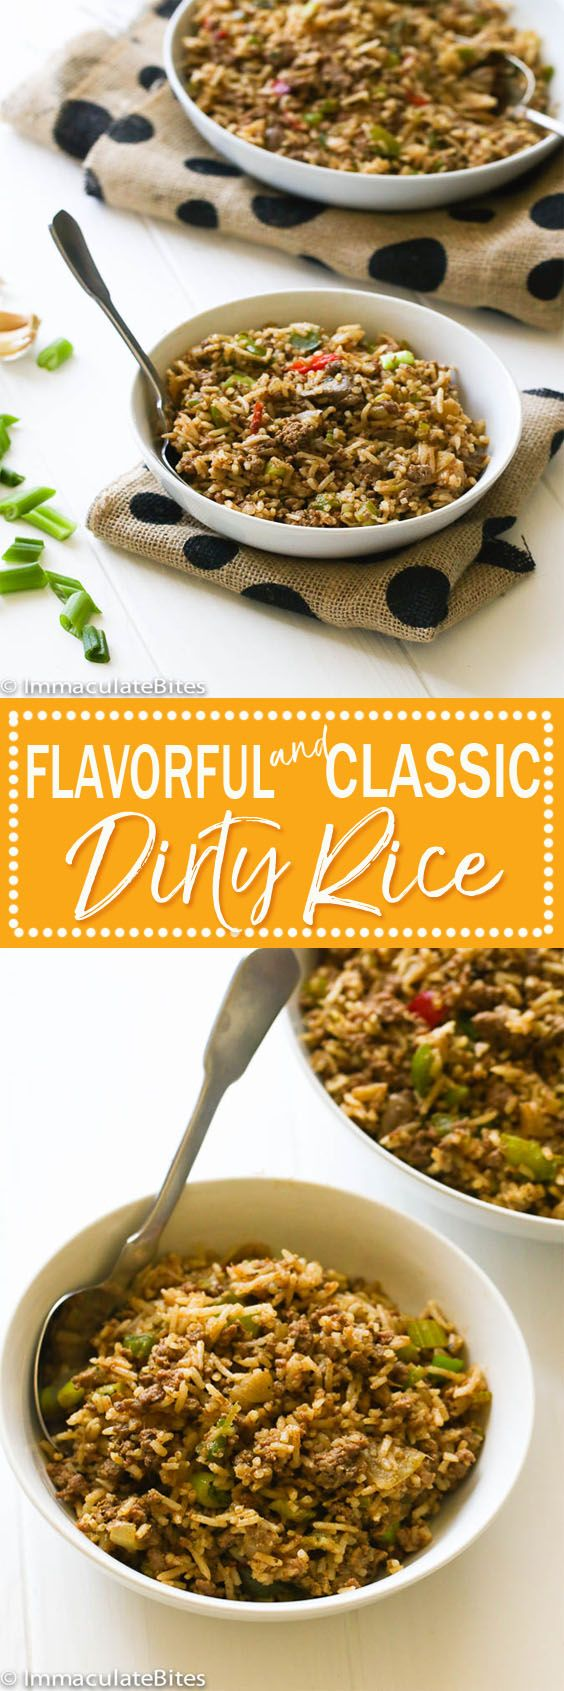 Dirty Rice - An incredibly rich and tasty one pot rice meal made from scratch with aromatics , seasoned with creole spices and fortified with ground beef , chicken livers and bacon. Liver haters you are going to love this too!